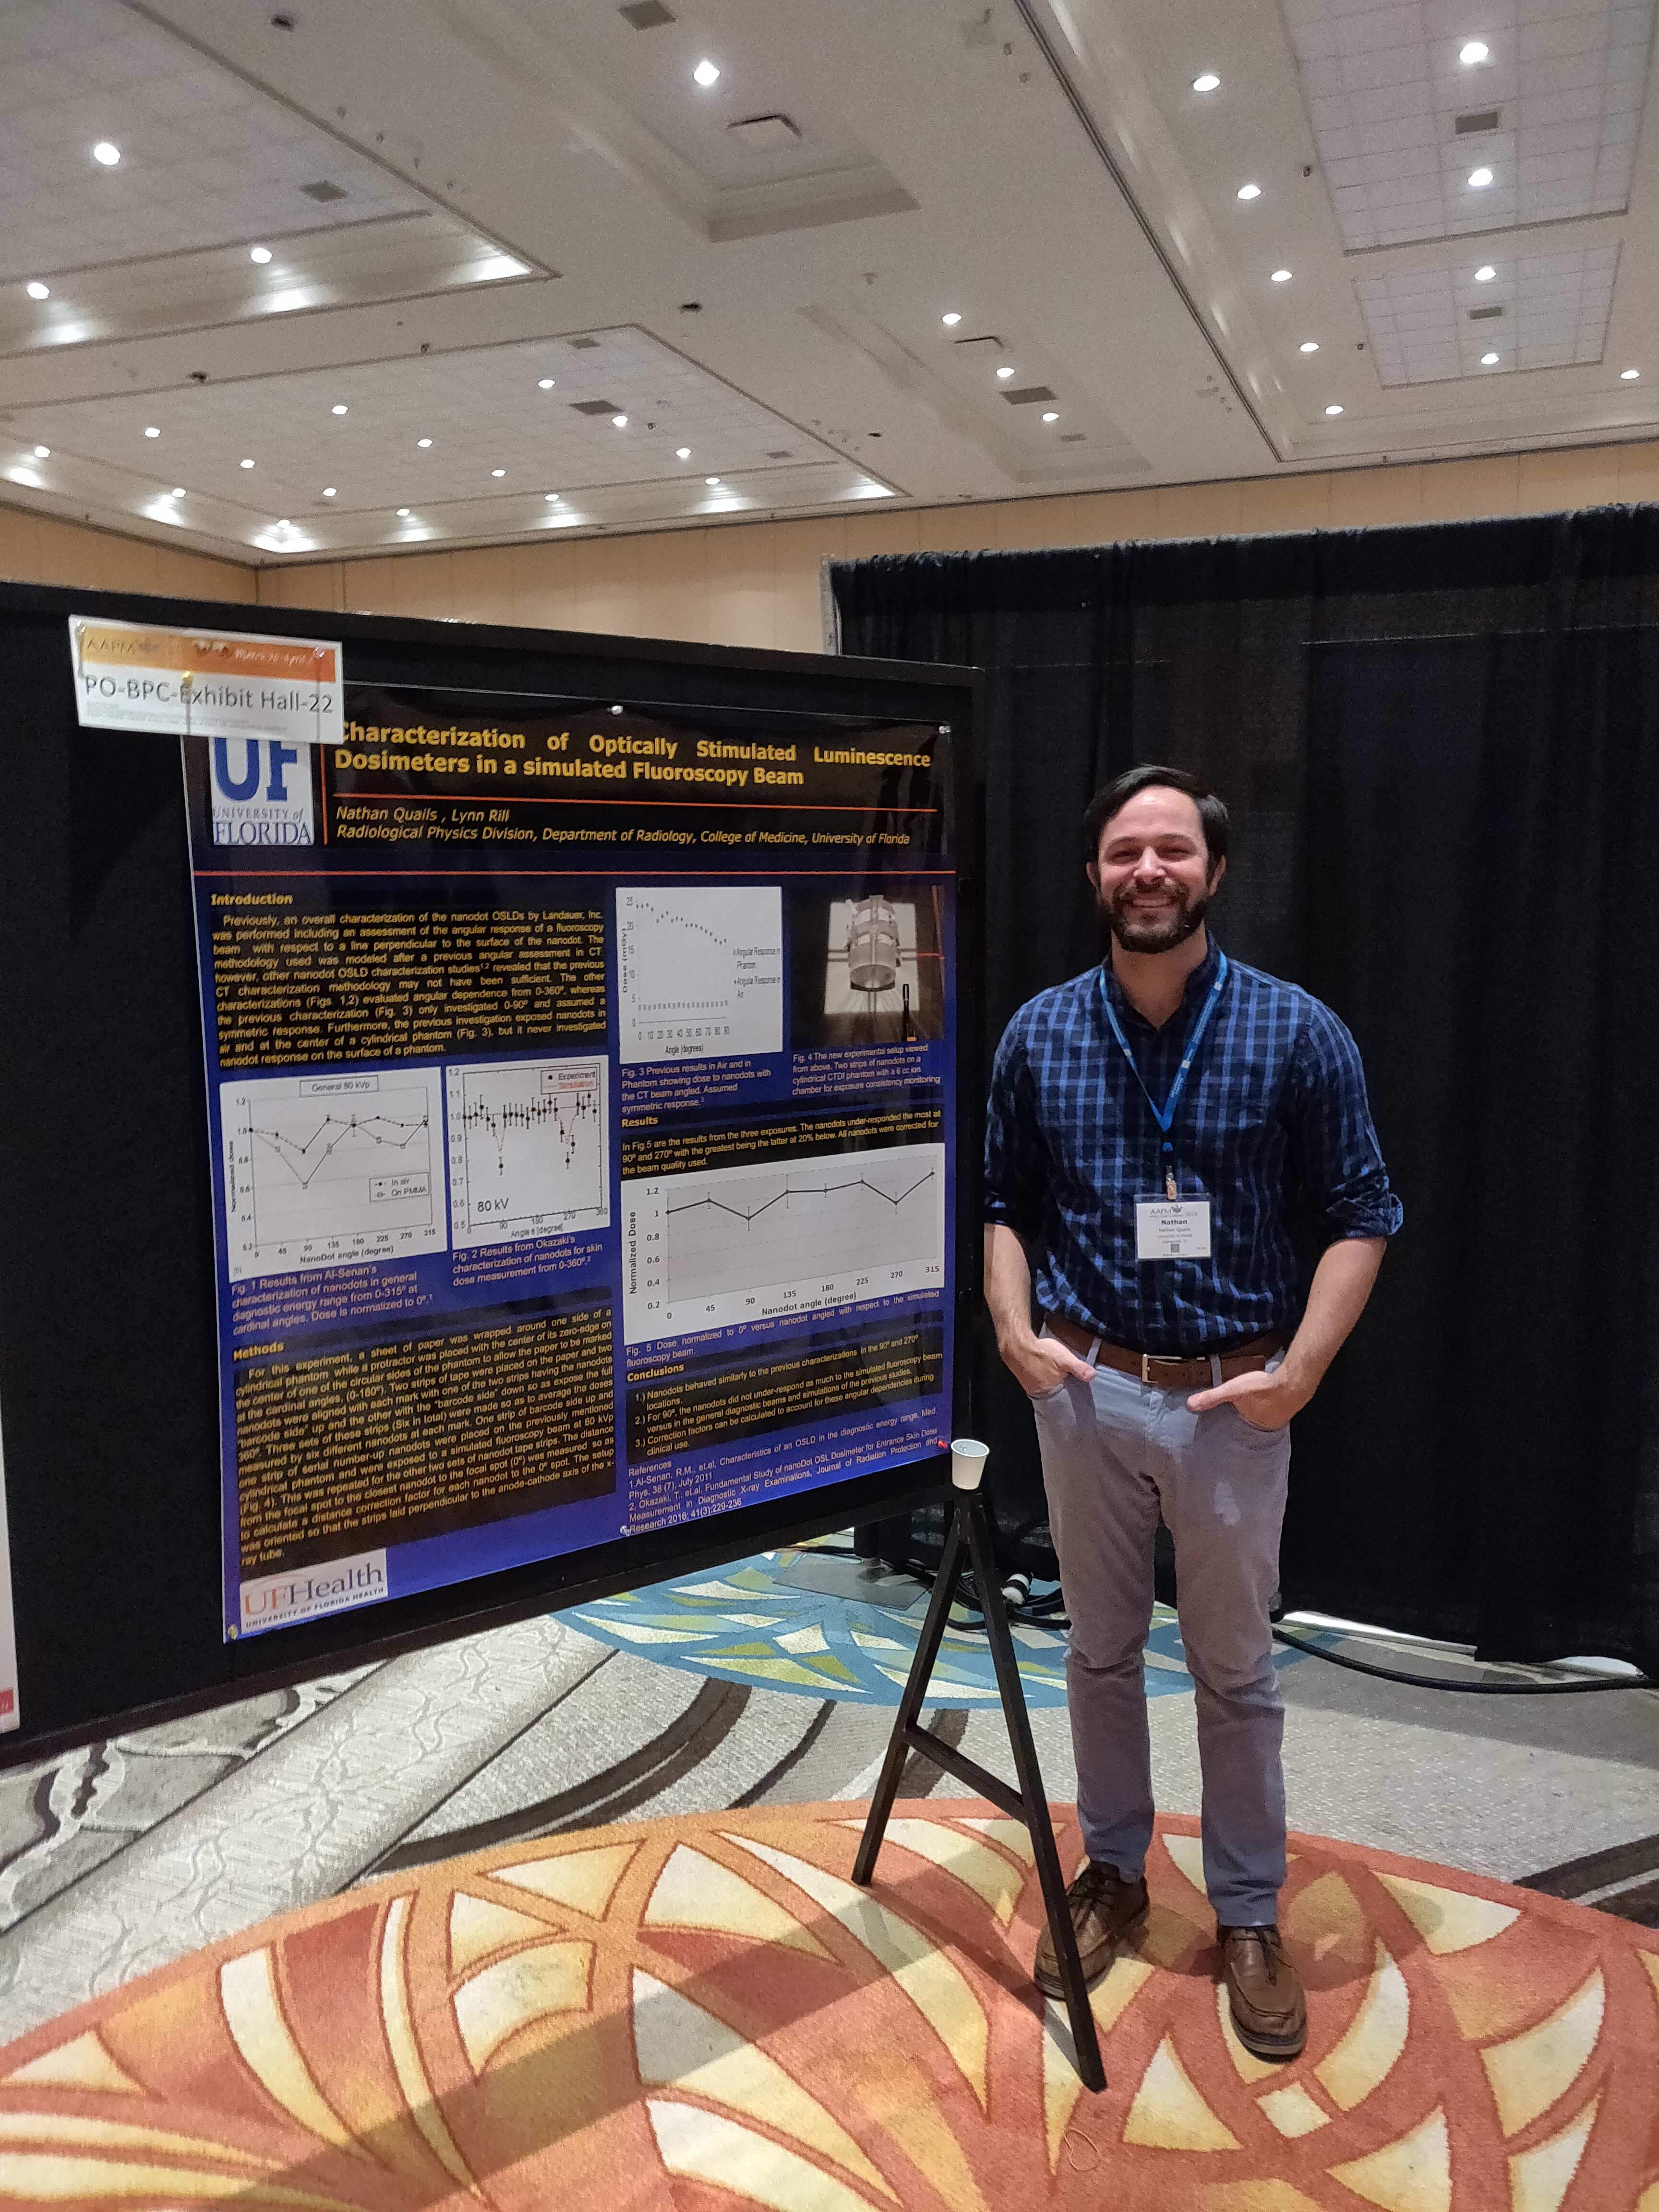 2019 Spring Clinical AAPM Poster by Nathan Quails